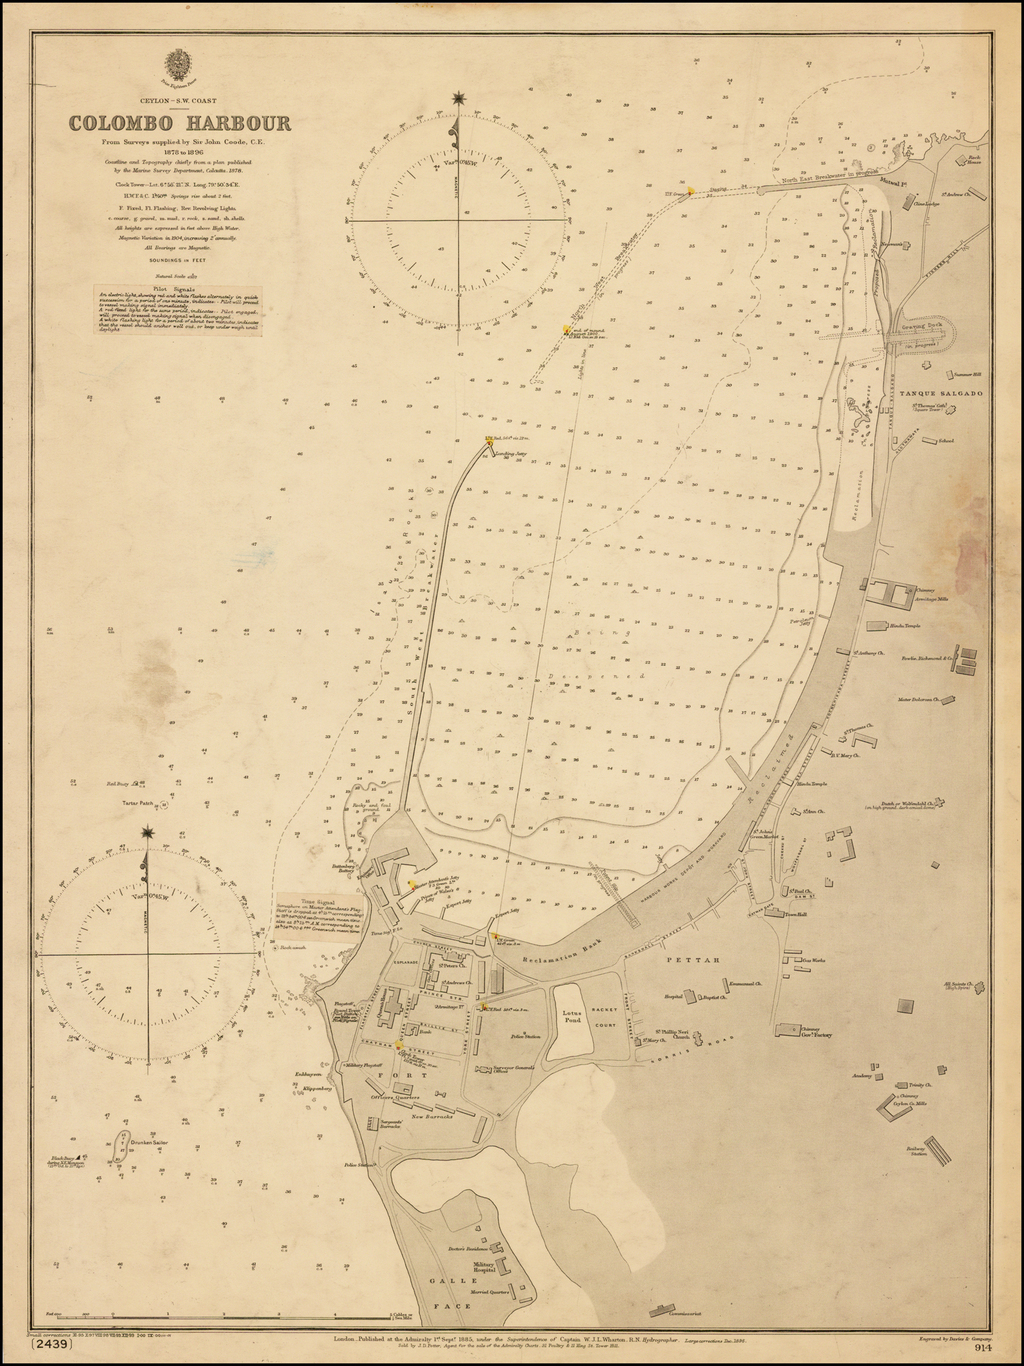 Ceylon -- S.W. Coast -- Colombo Harbour From Surveys supplied by Sir. John Coode, C.E. 1878 to 1896.  Coastline and Topography chiefly from a plan publisehd by the Marine Survey Department, Calcutta, 1878. By British Admiralty